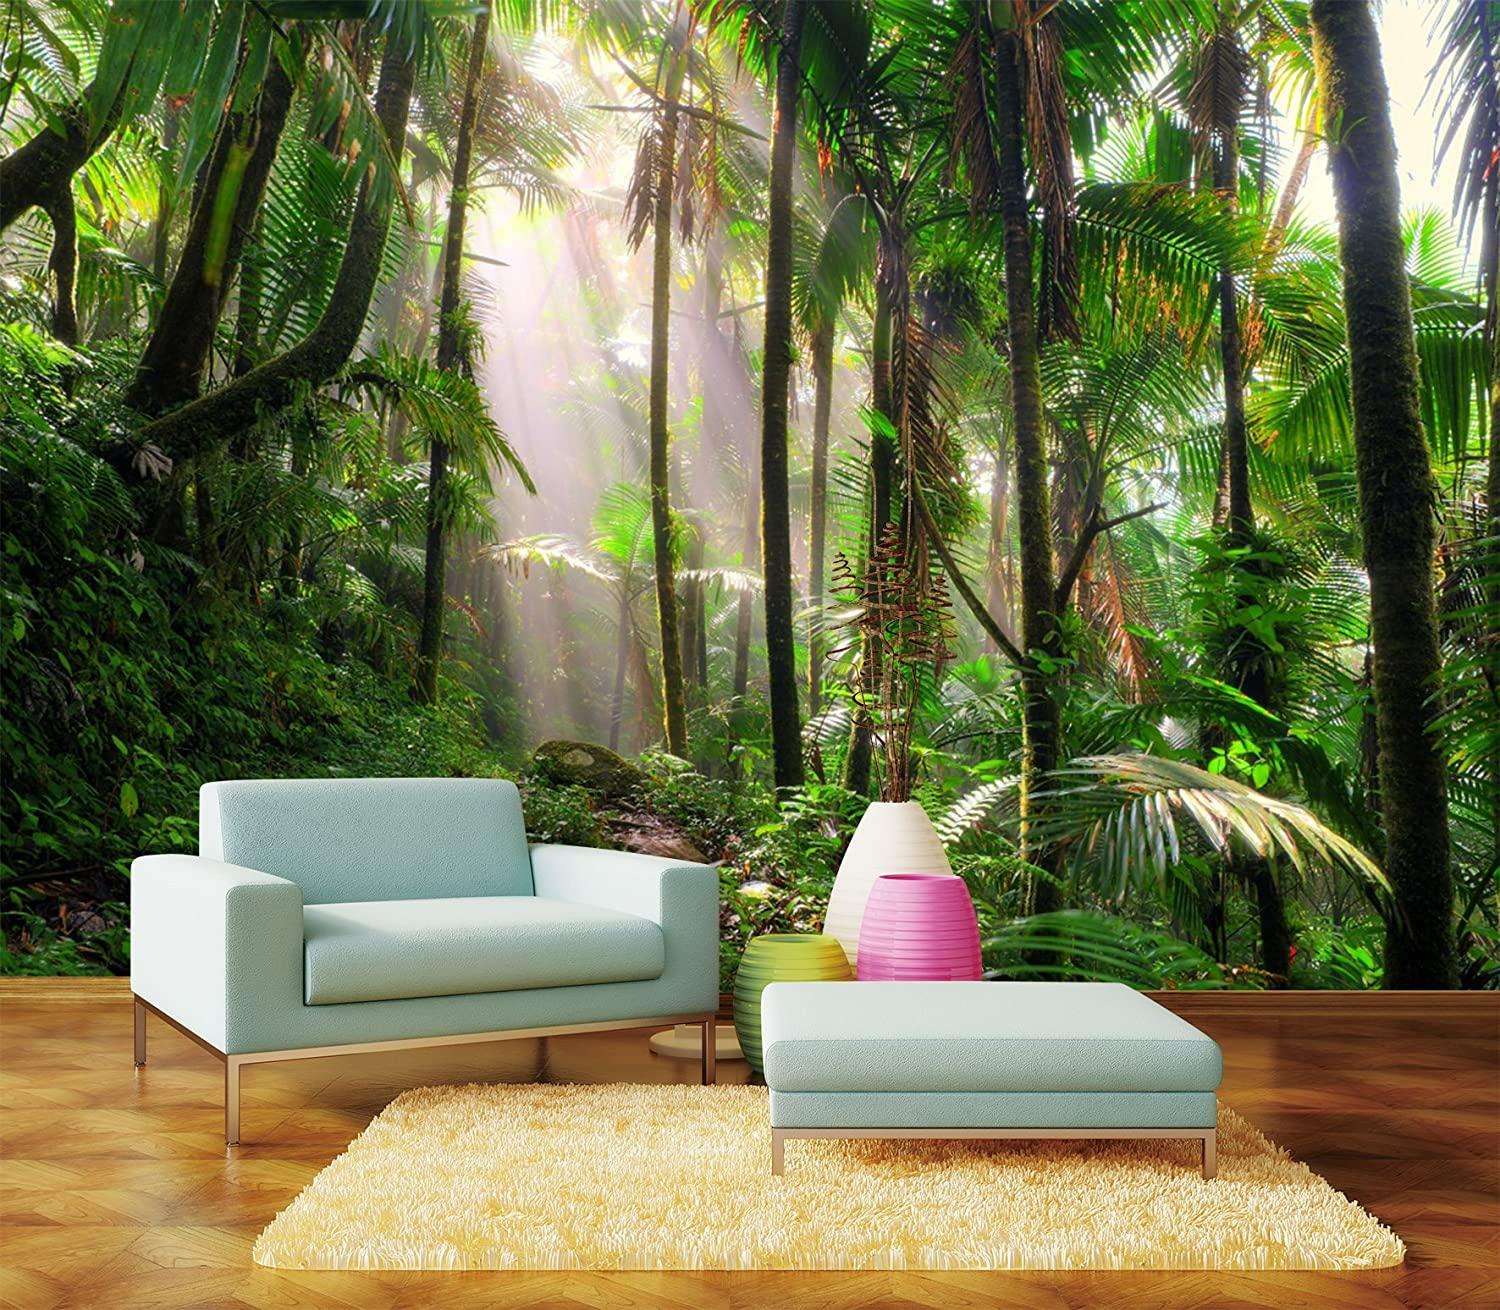 Green Forest Sunshine Full Wall Mural Wallpaper Print Decal Indoor Deco Home Au